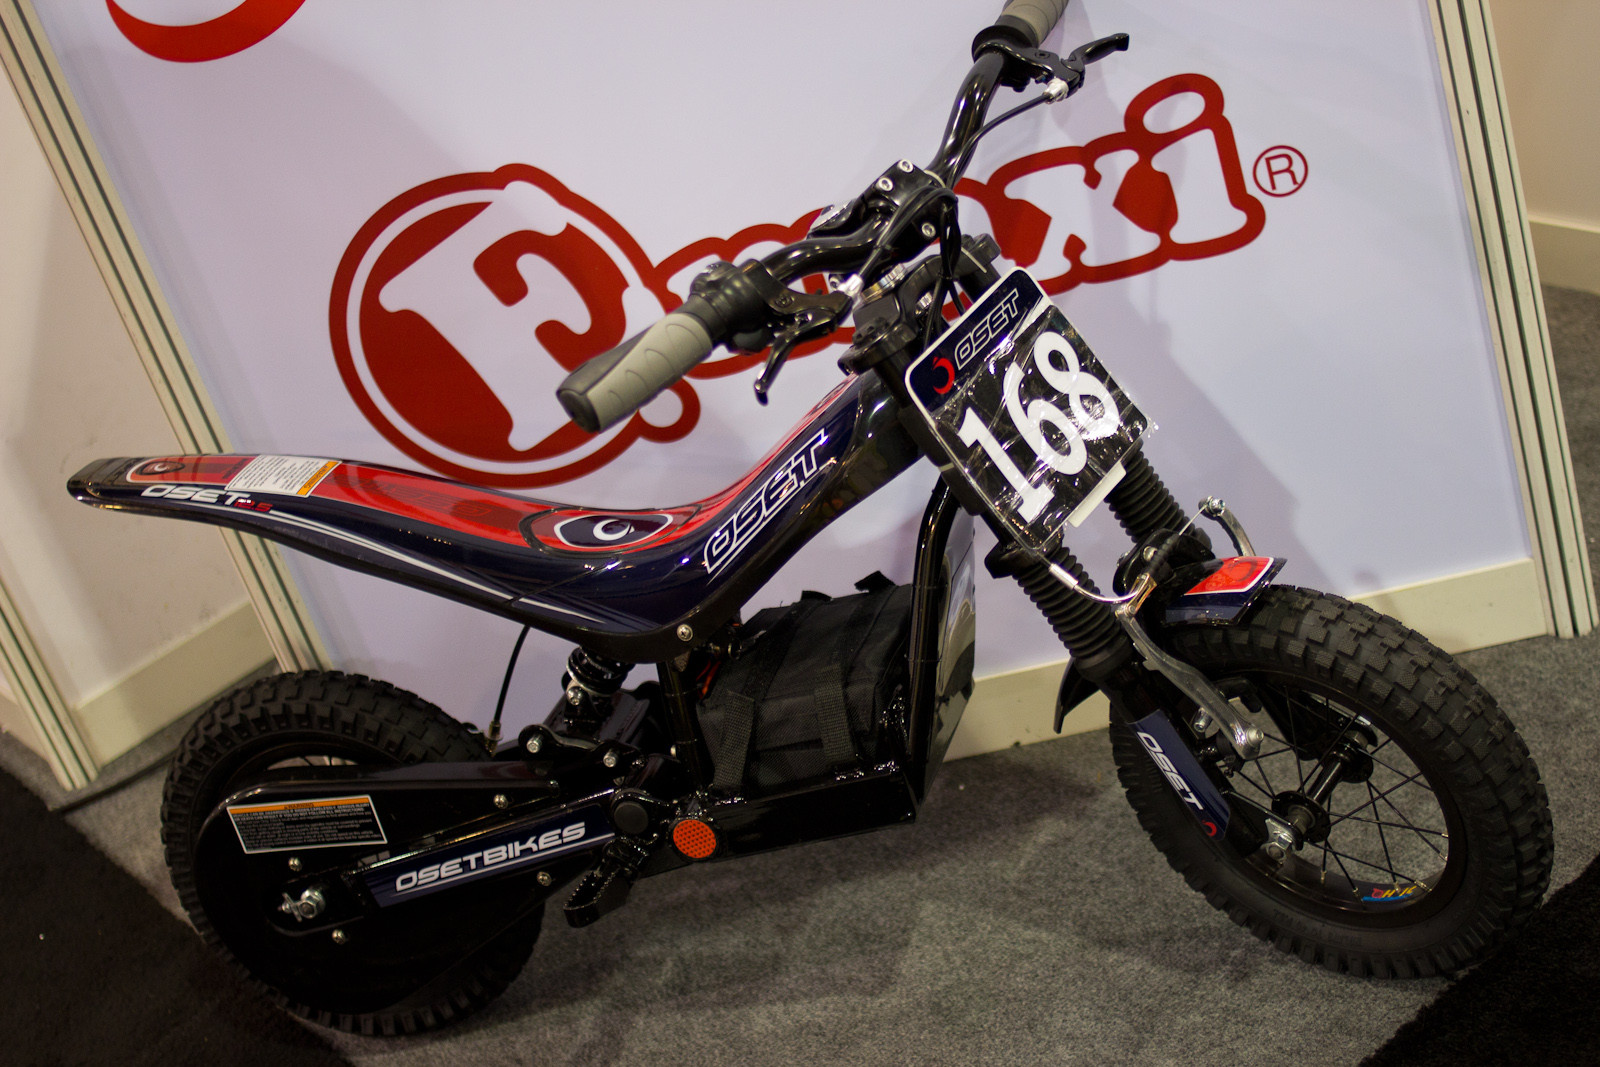 Mini Trials Moto Bike - Random, Wacky, and Weird from Interbike 2012  - Mountain Biking Pictures - Vital MTB